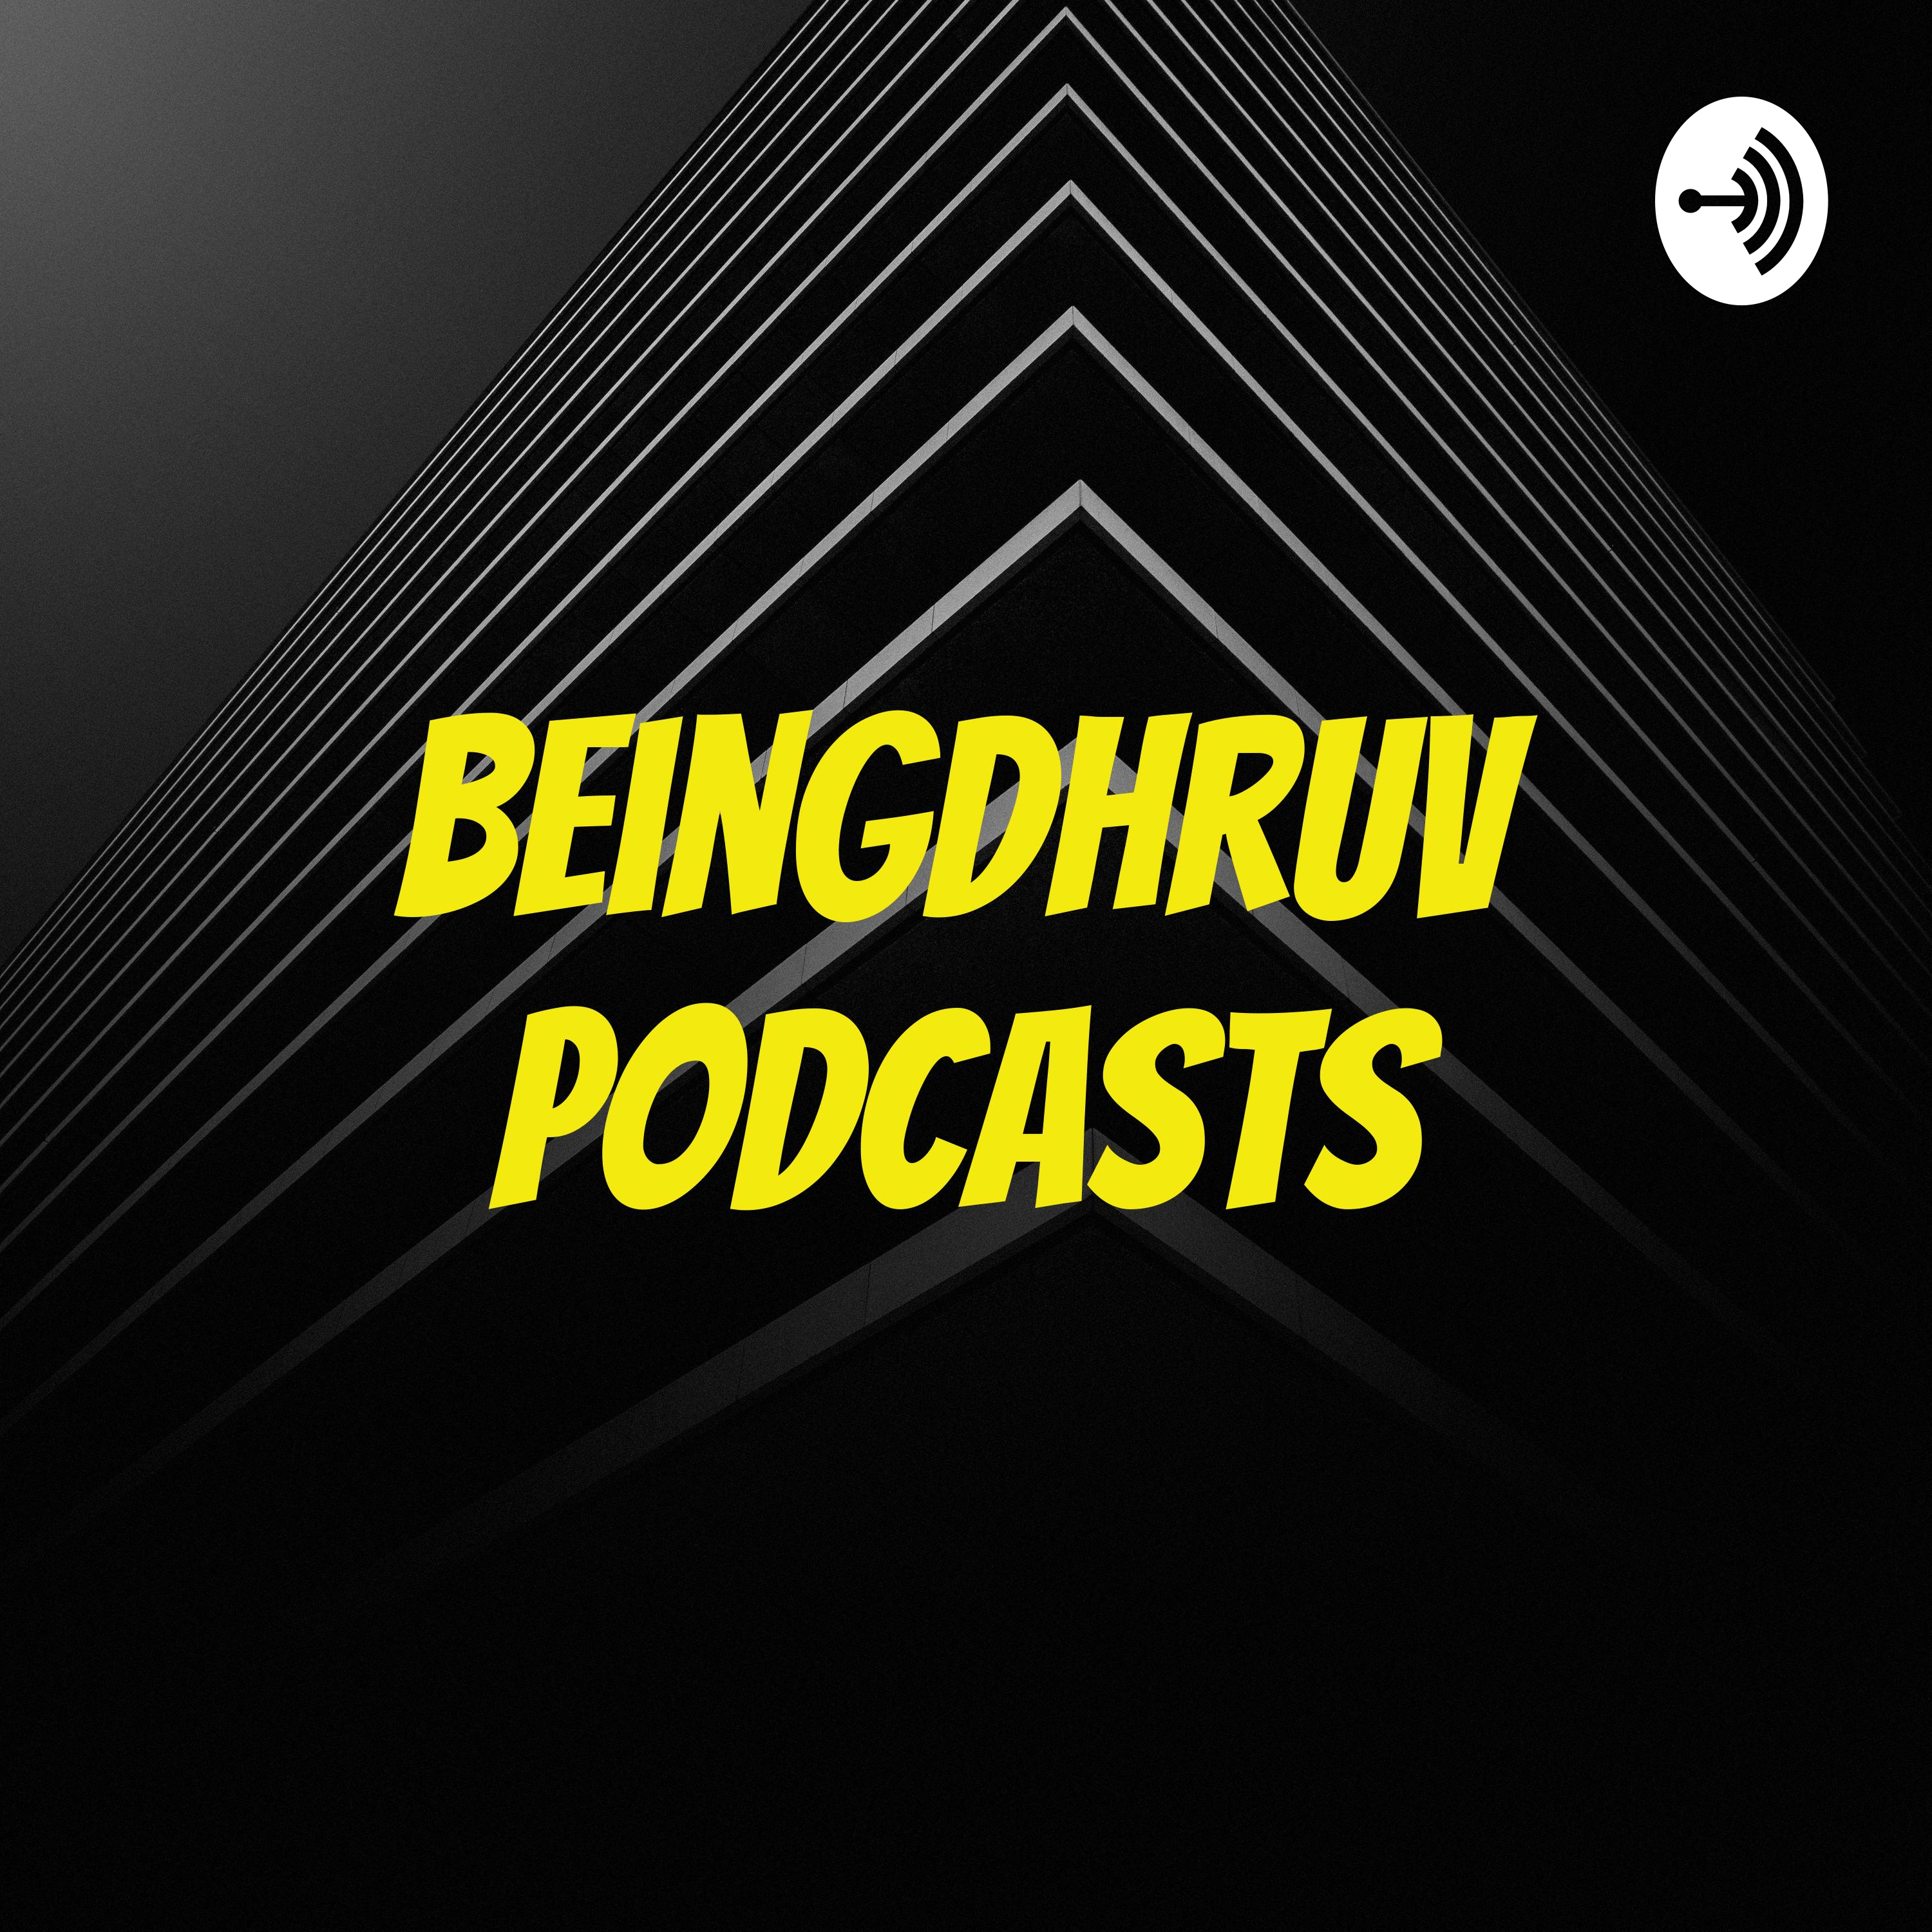 BeingDhruv Podcasts